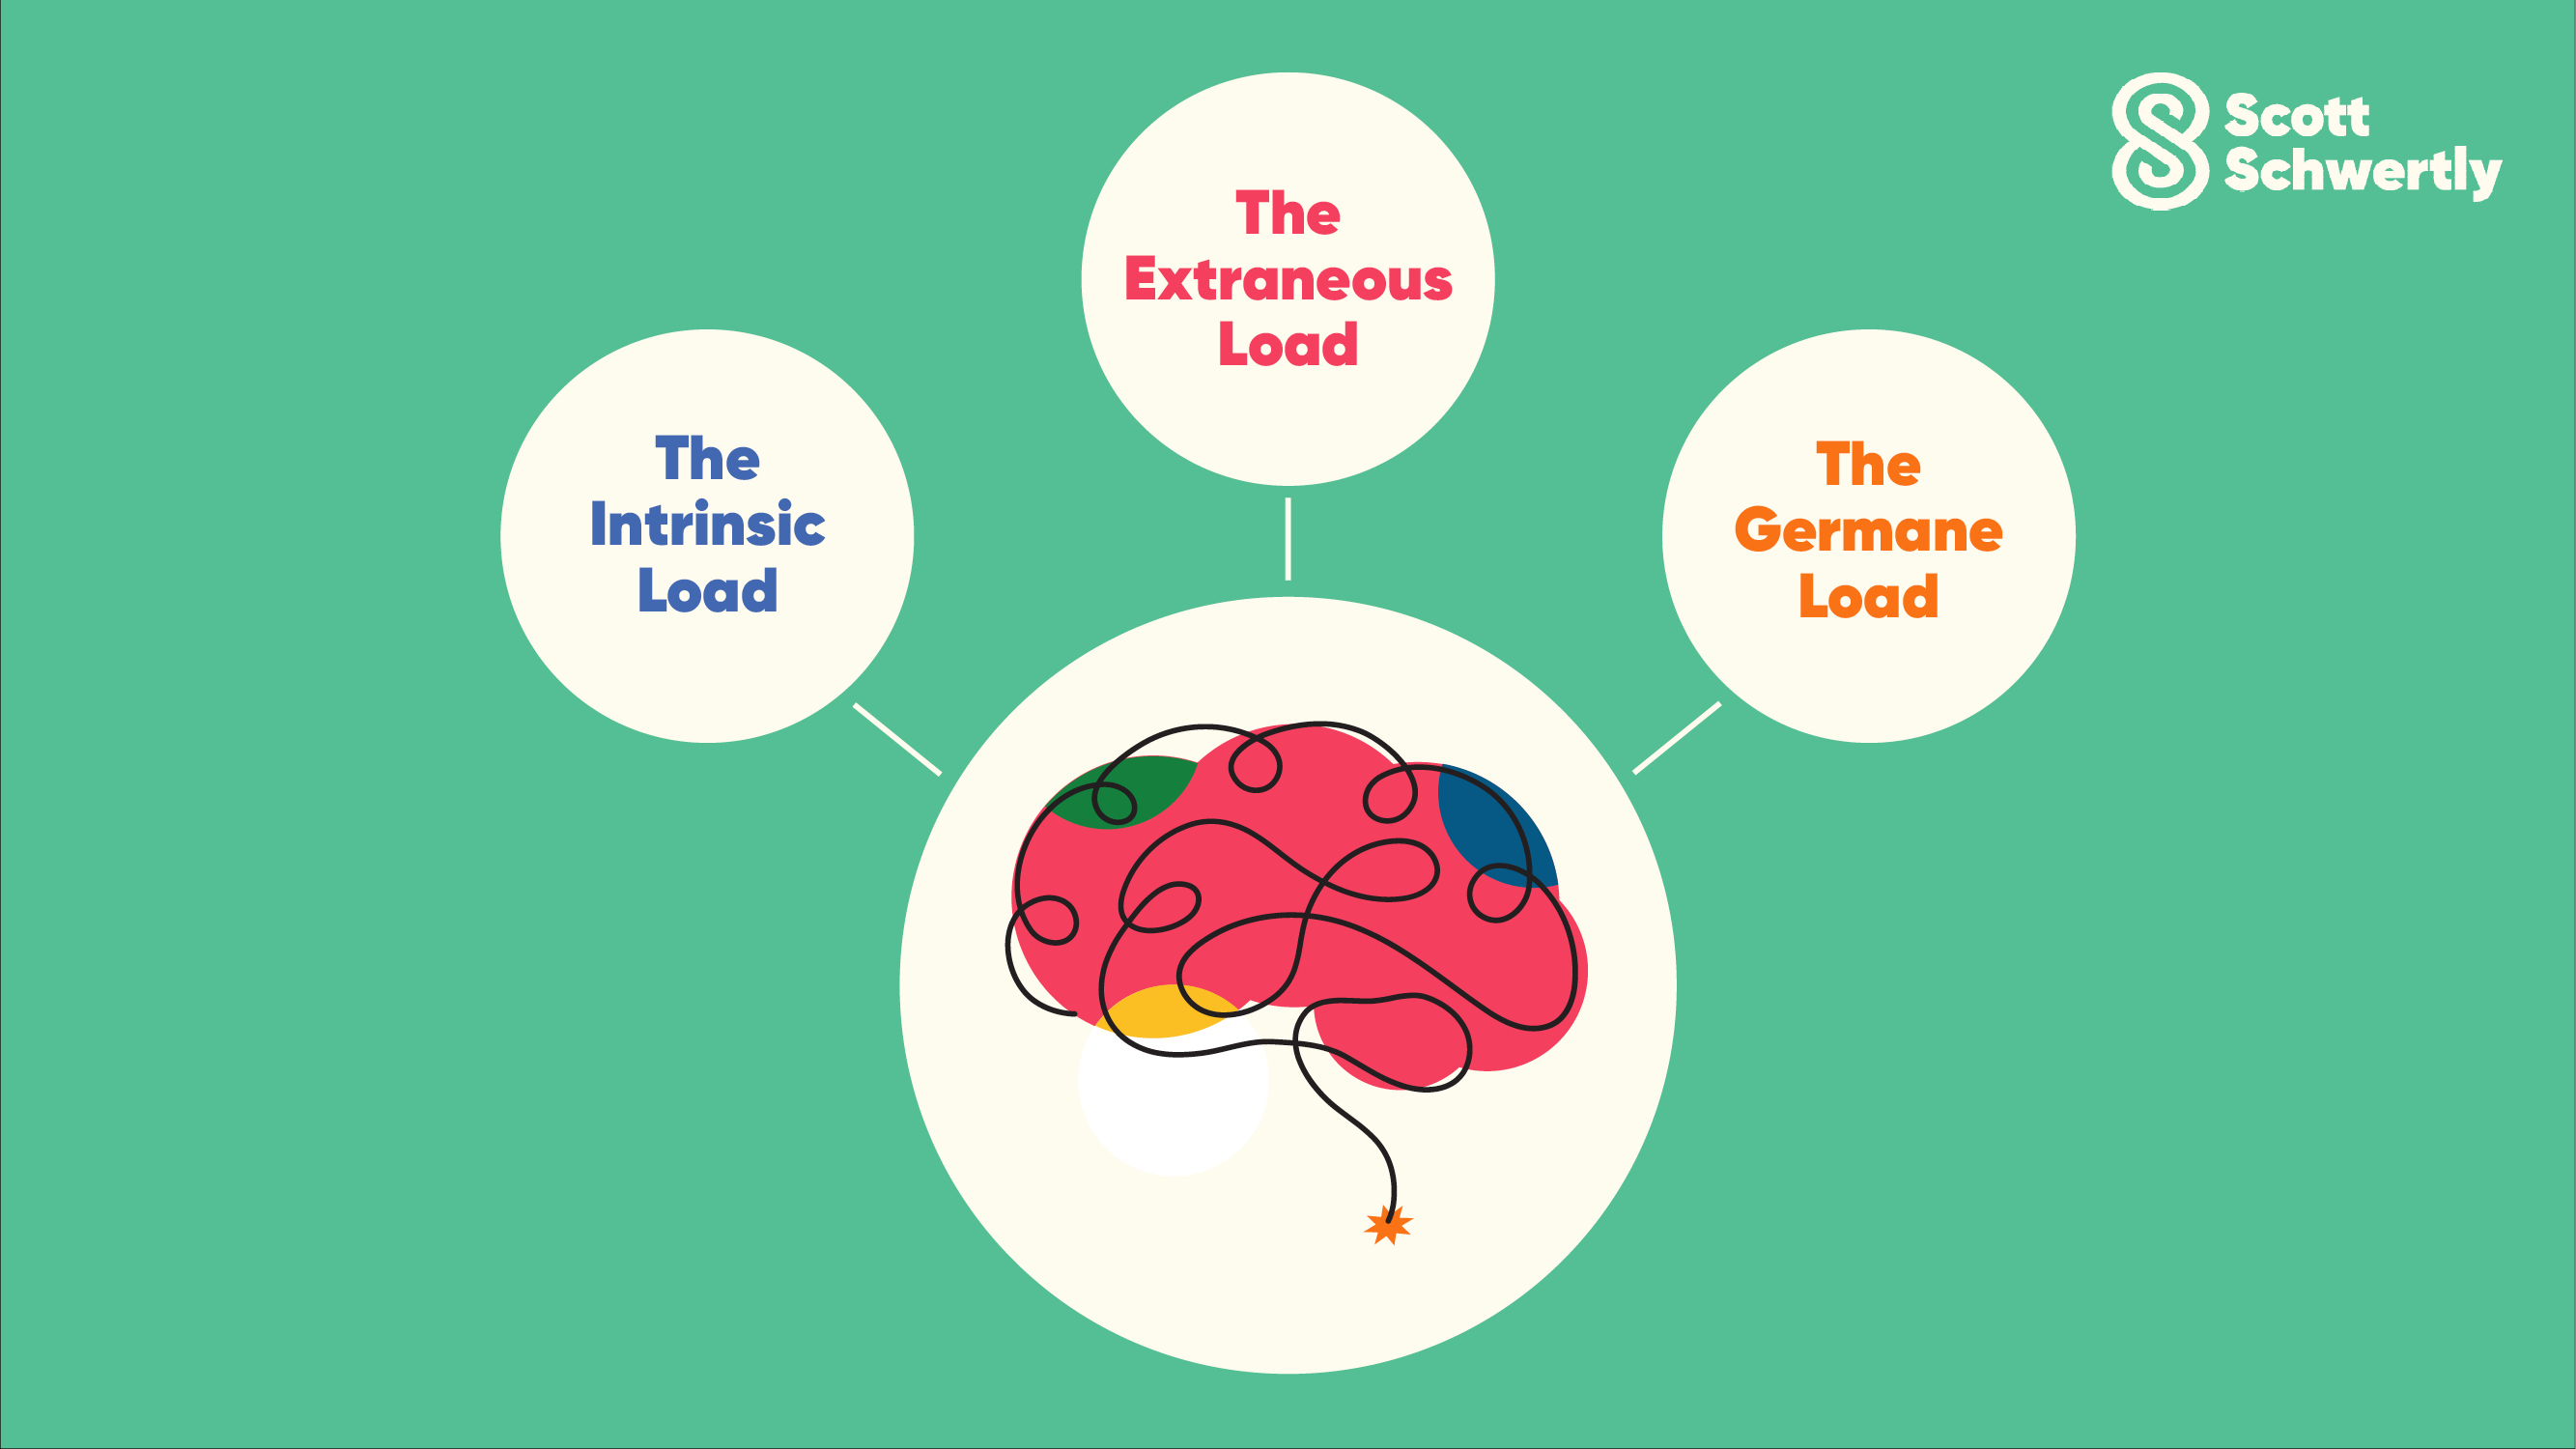 Cognitive Load Theory Explained for Presentations